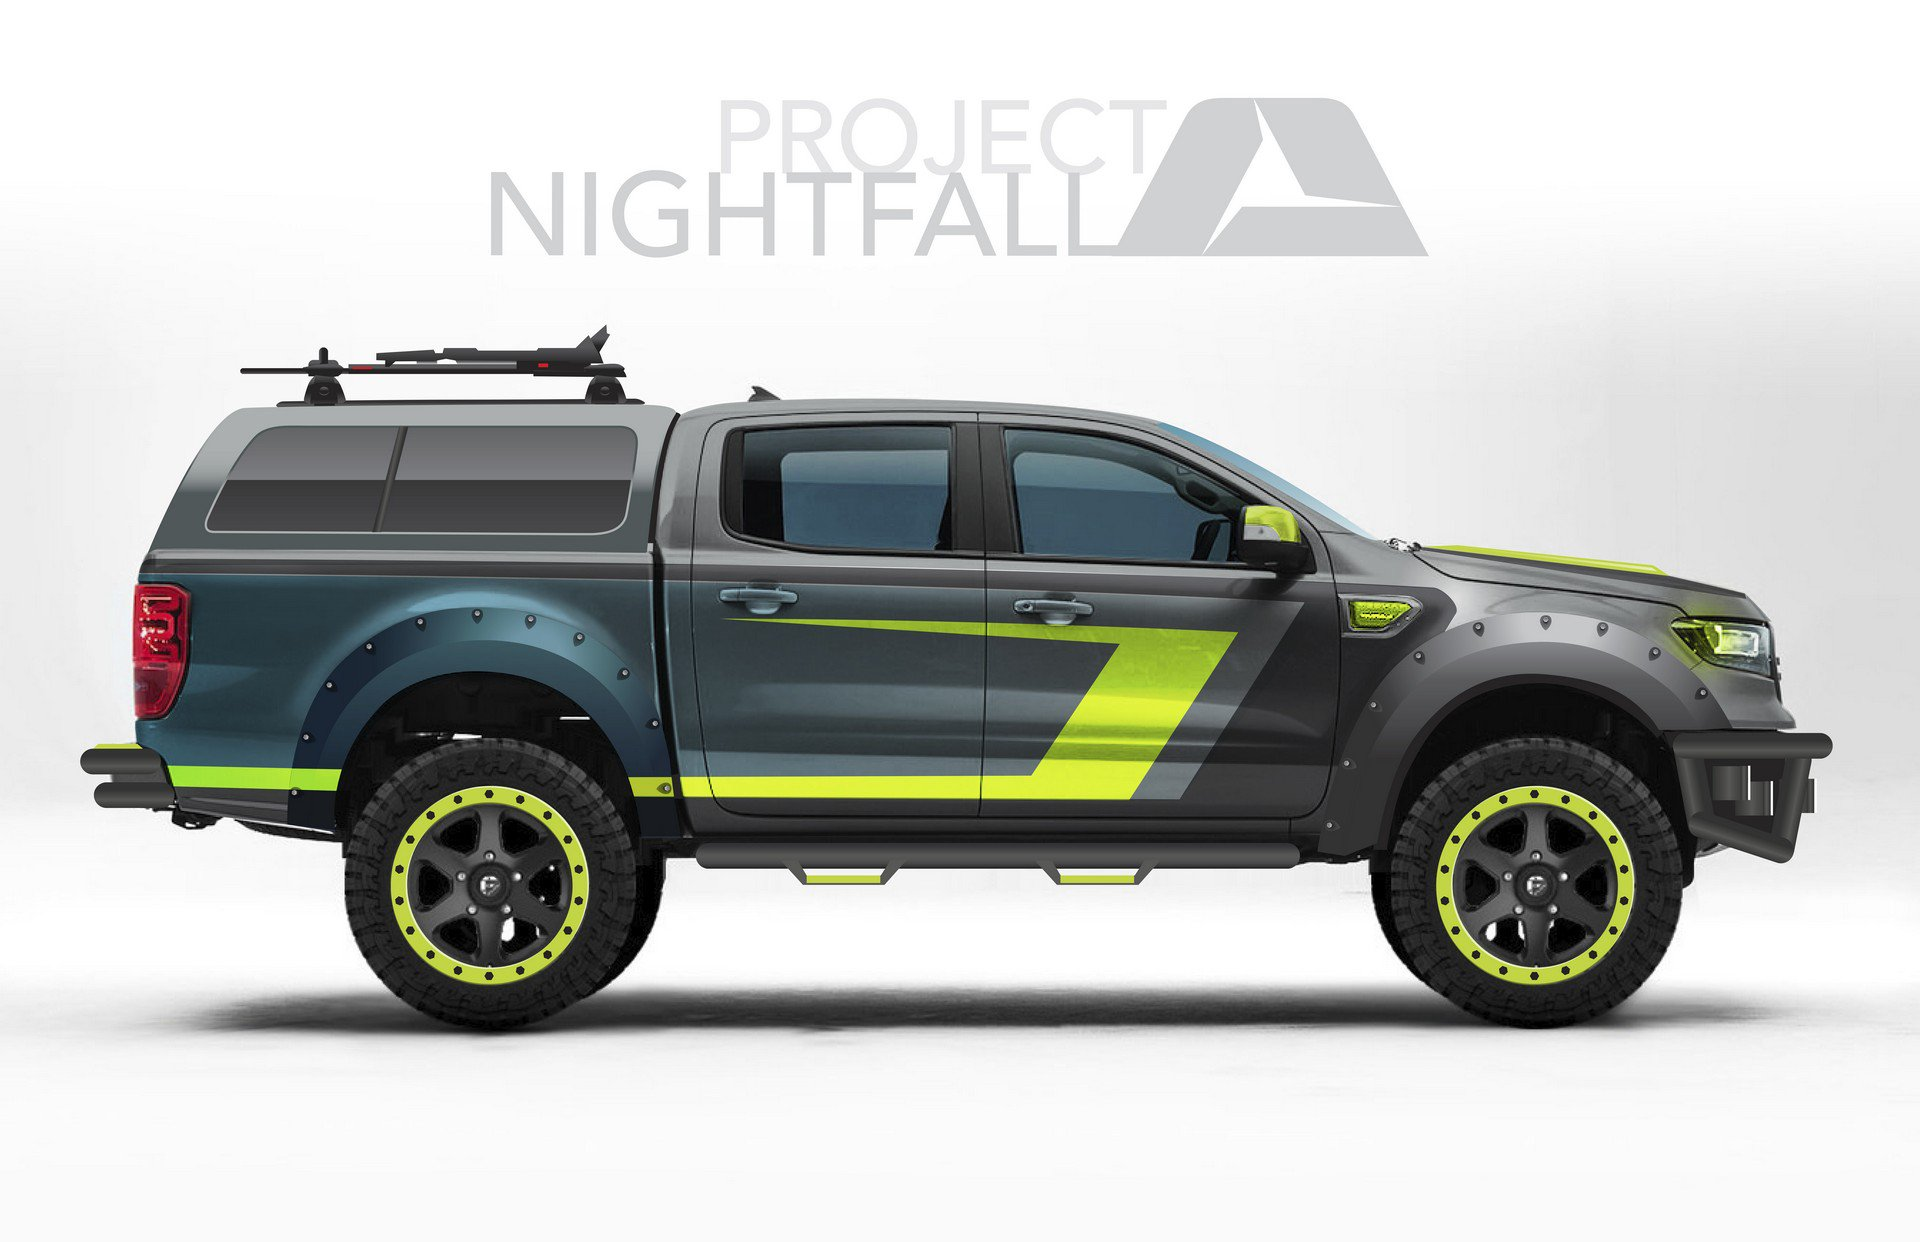 Palm Springs Ford >> Ford Reveals 2019 Ranger Concept Trucks At SEMA Show - autoevolution